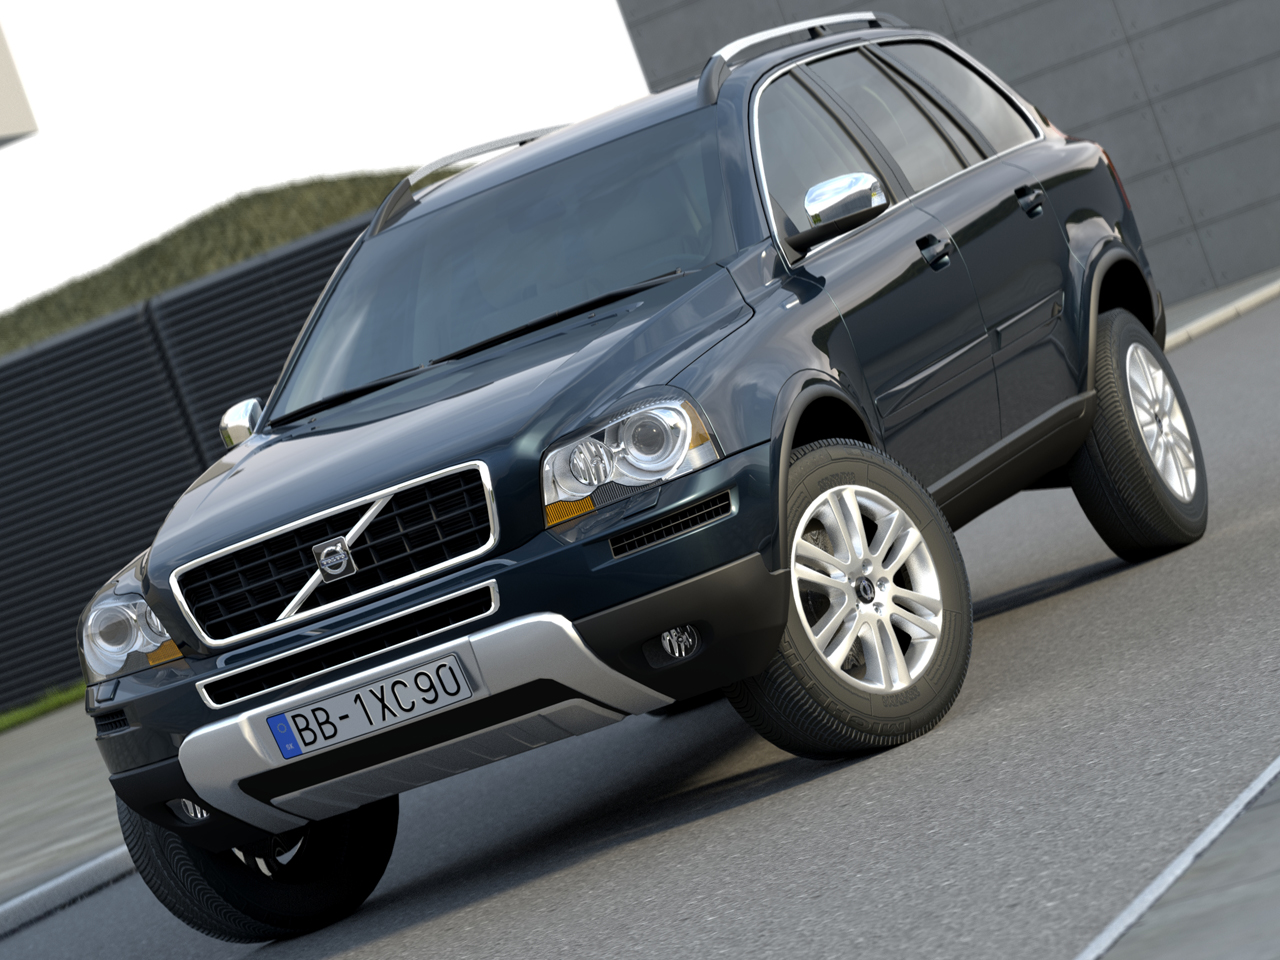 suv xc90 (2009) 3d model 3ds max fbx c4d obj 106946